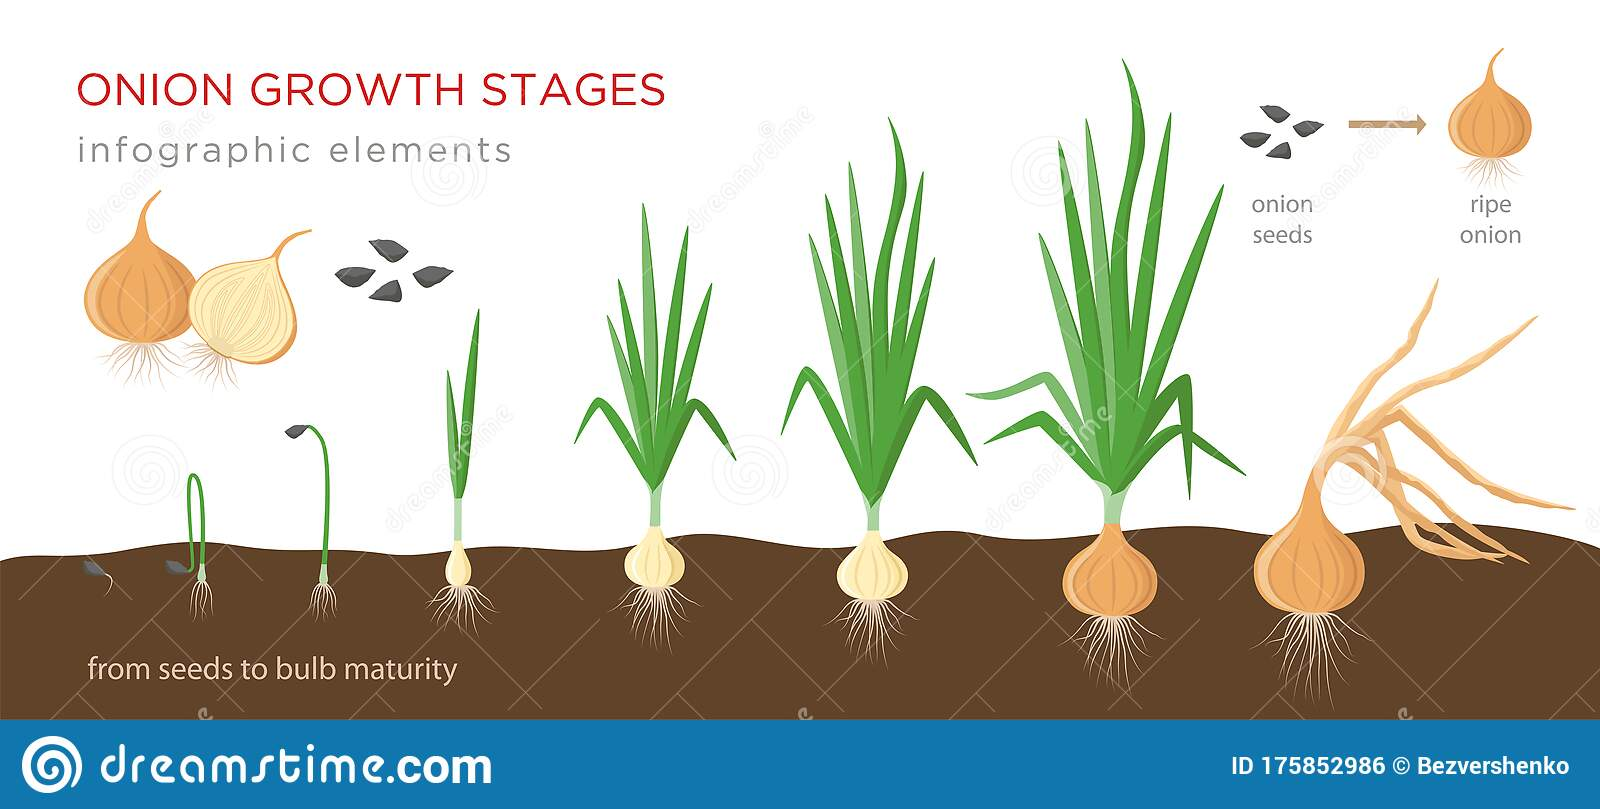 Onion Plant Growing Stages From Seeds To Ripe Onion ...